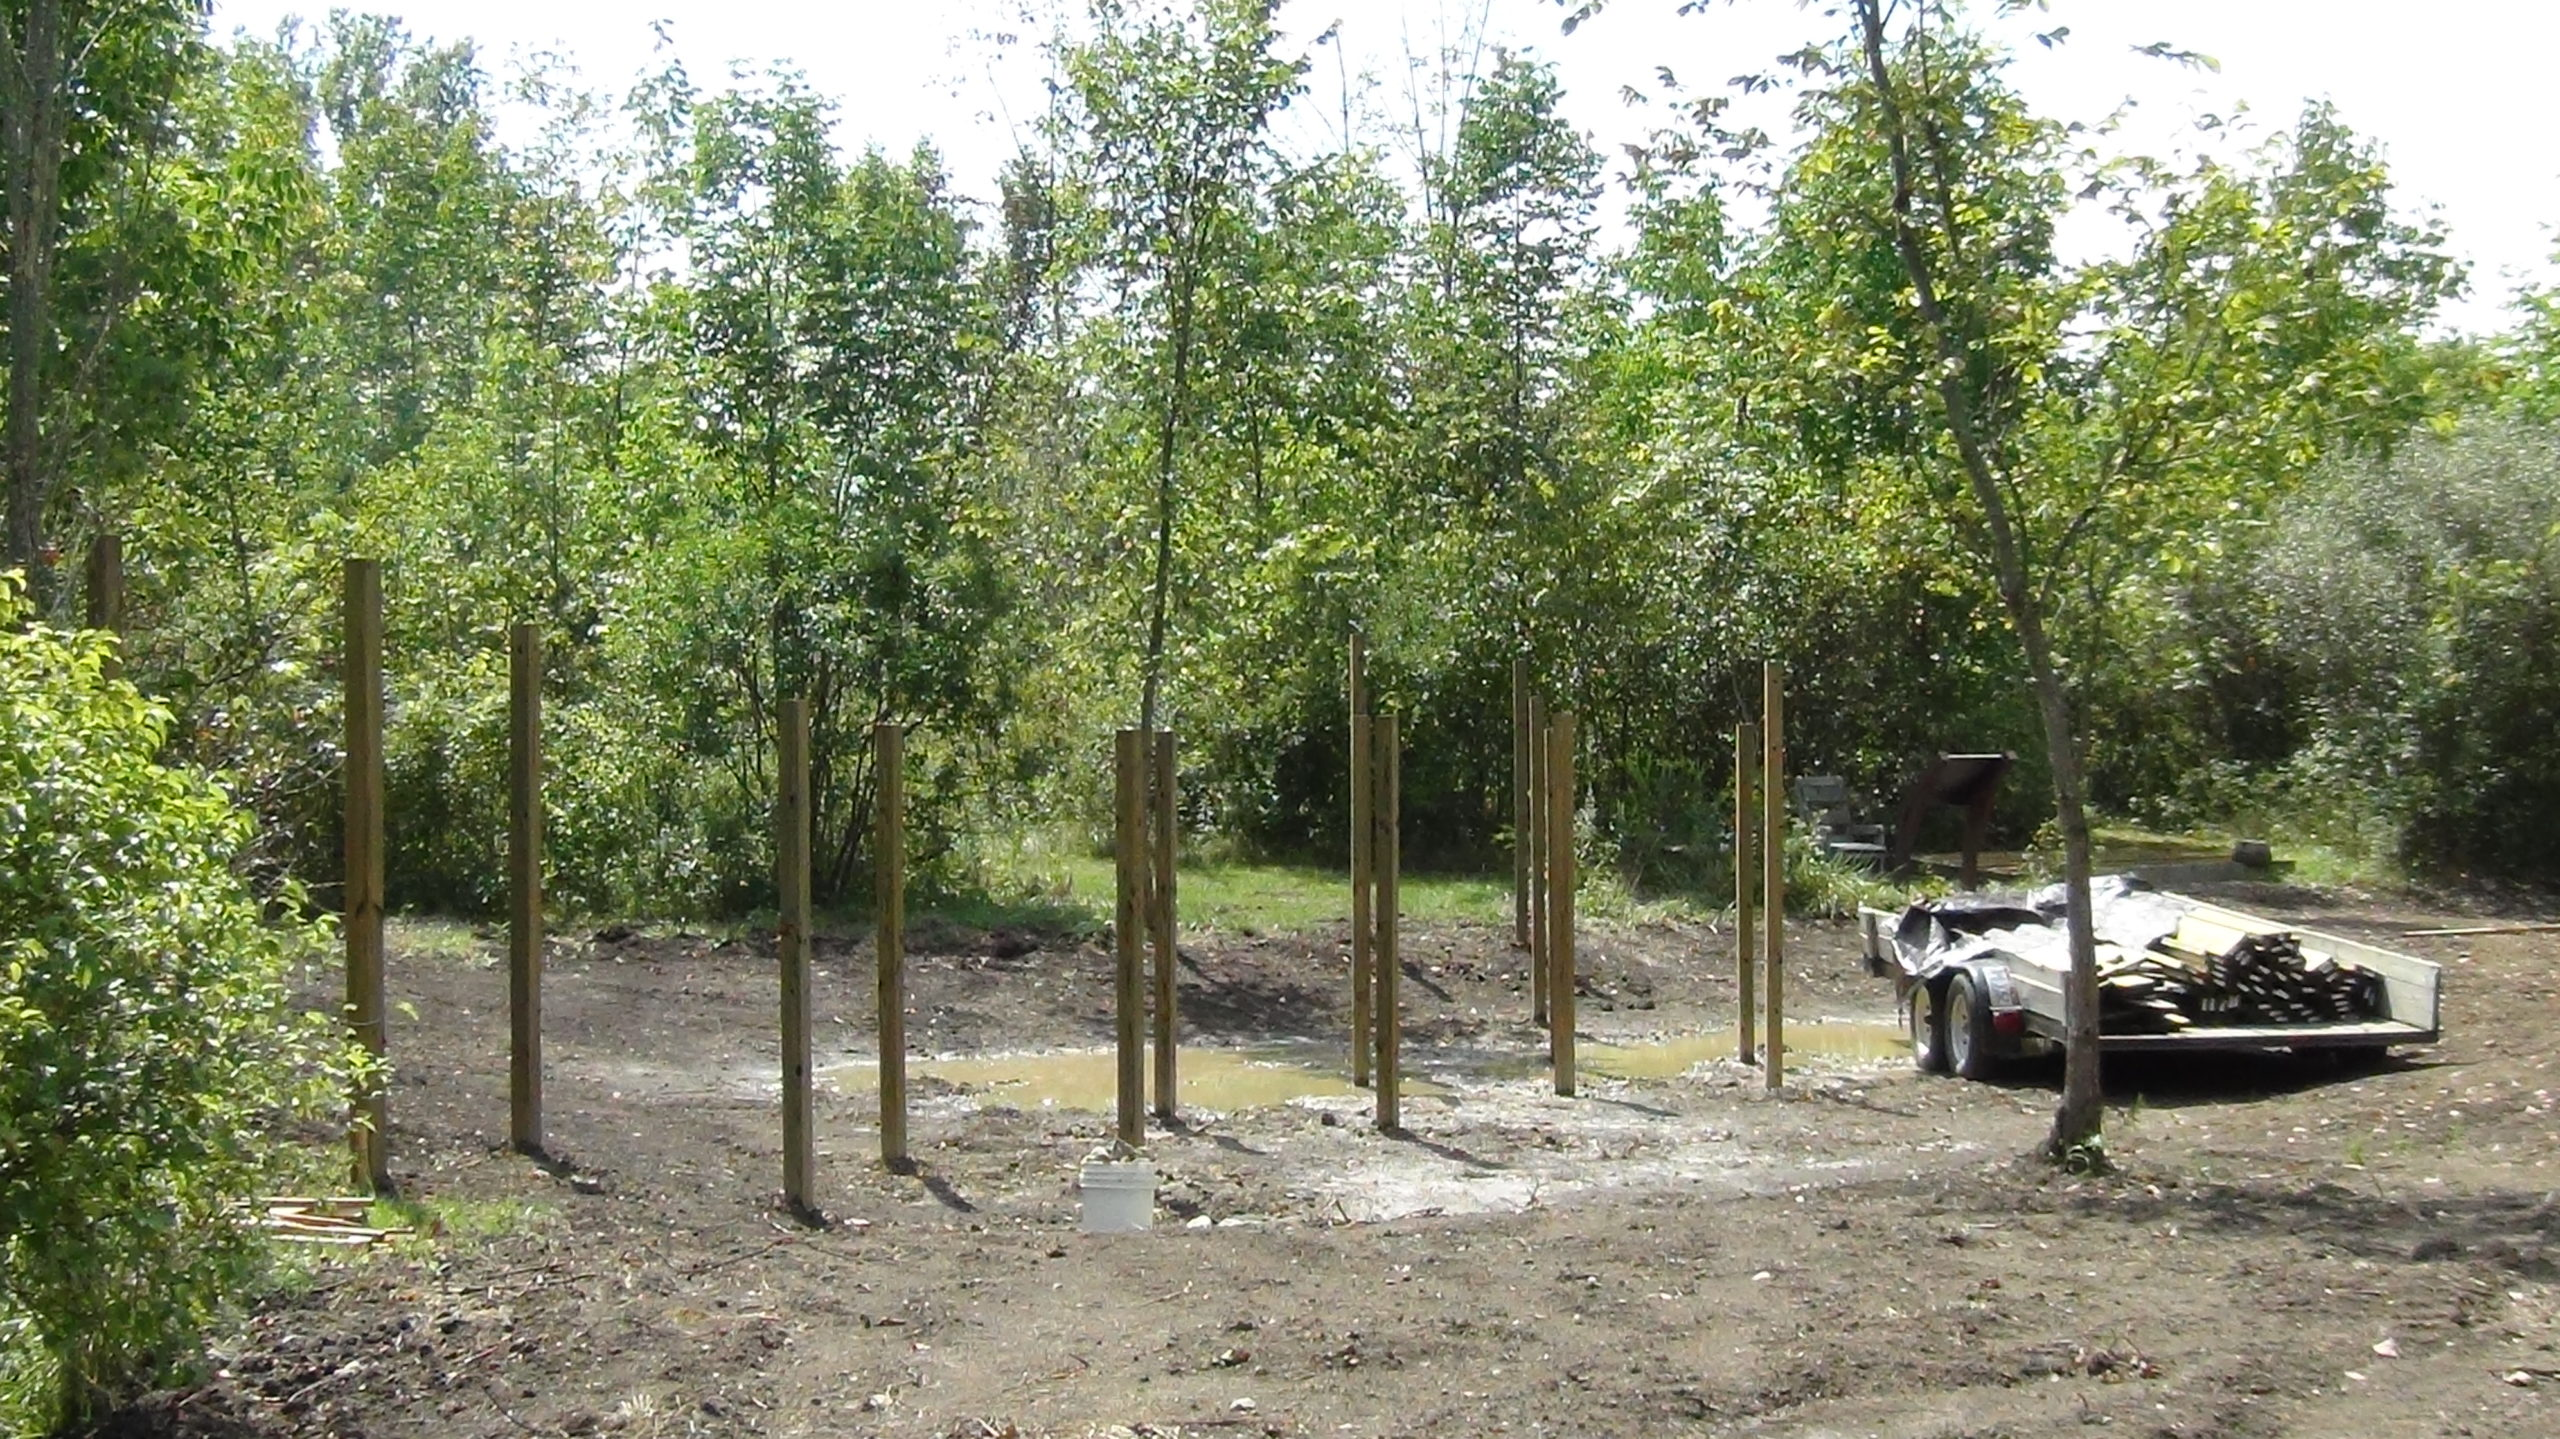 Over 12 4x4 wooden posts inserted into the ground. This is in the same area where the previous pictures are, the space that will be the wetland. These numerous posts will be the base for the walkway over the wetland.